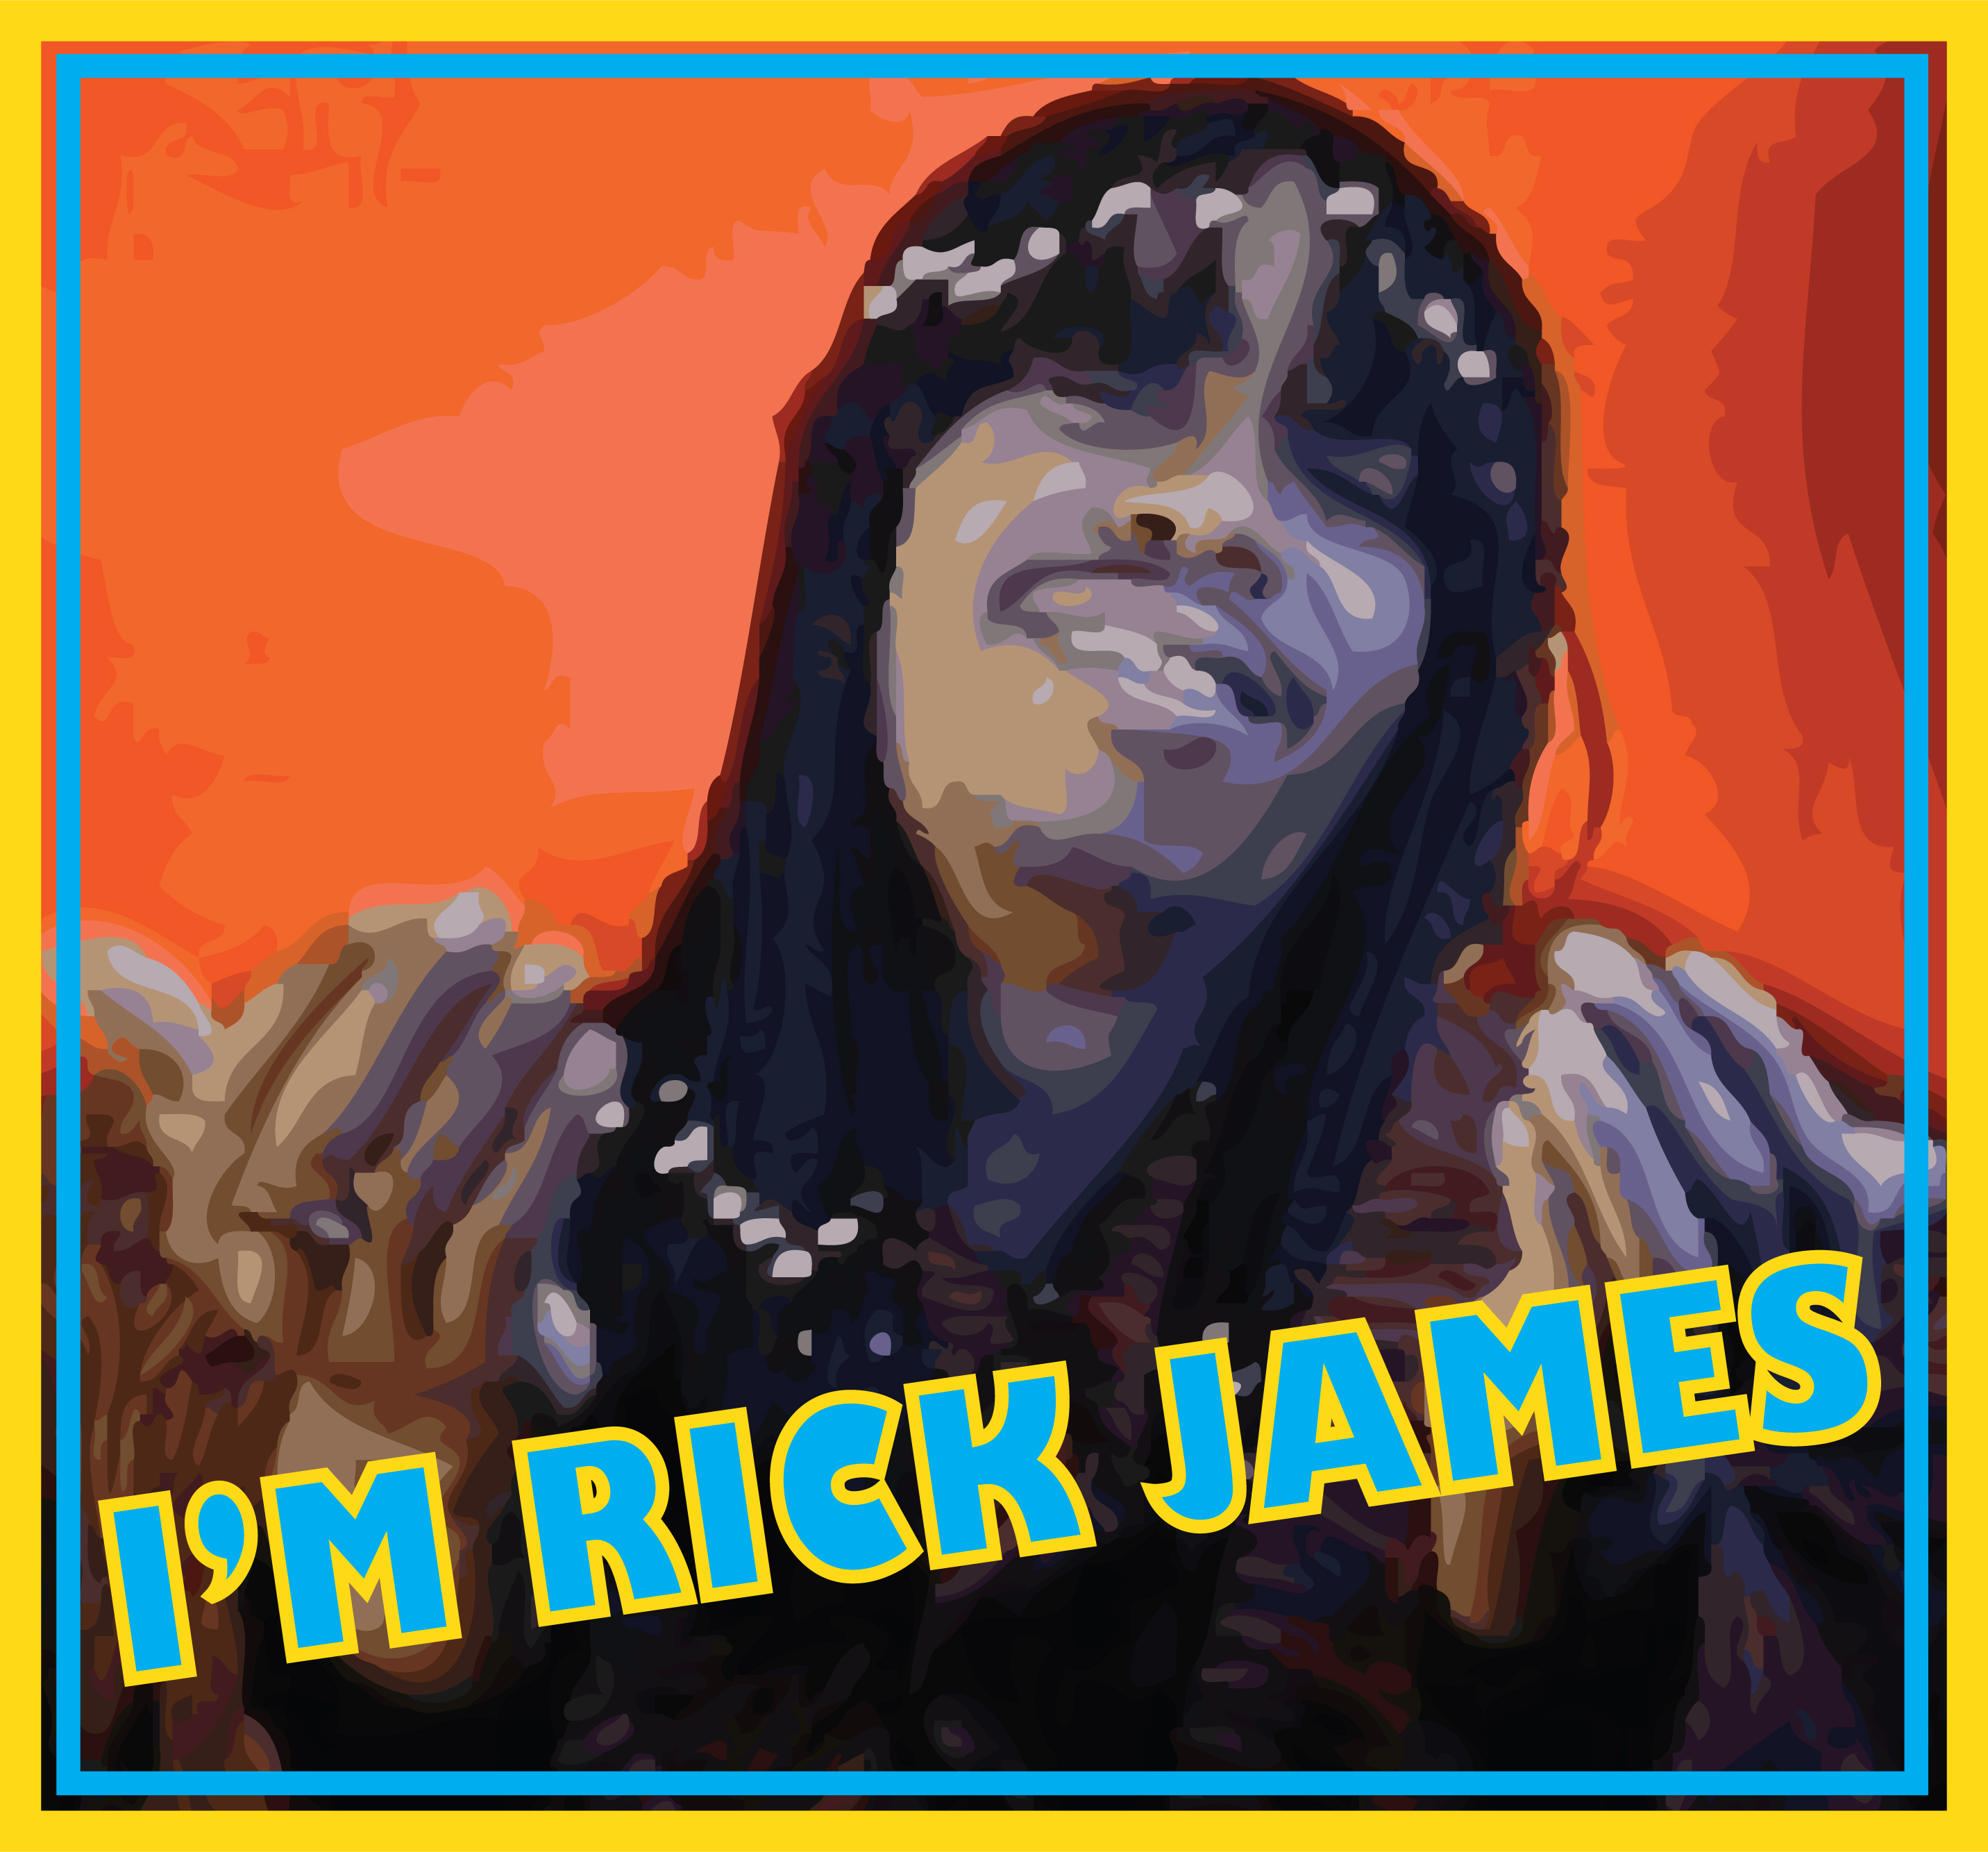 Rick James Chappelle Quotes. QuotesGram